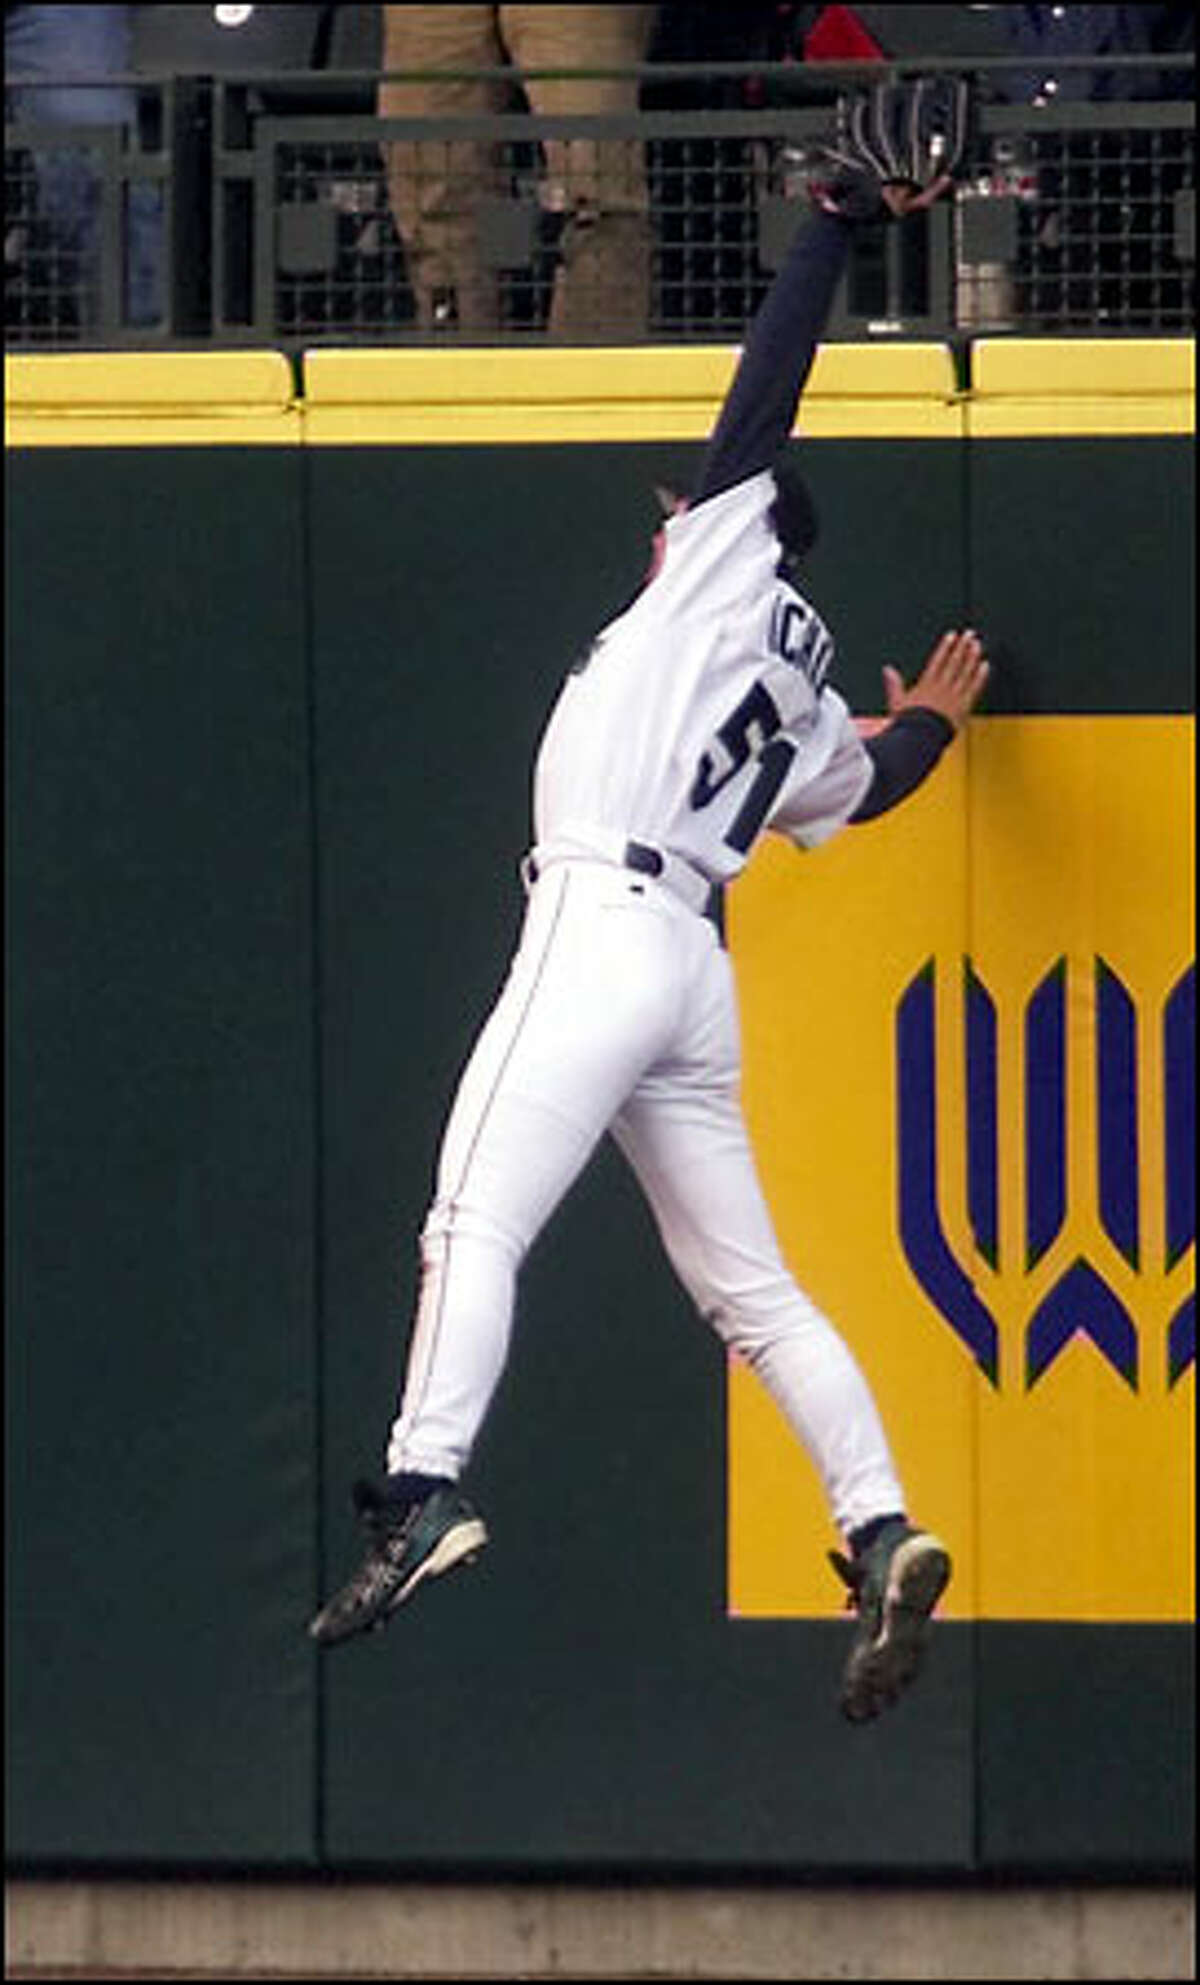 Mariners right fielder Ichiro Suzuki leaps at the wall to rob Rafael Palmeiro of a home run in the second inning.